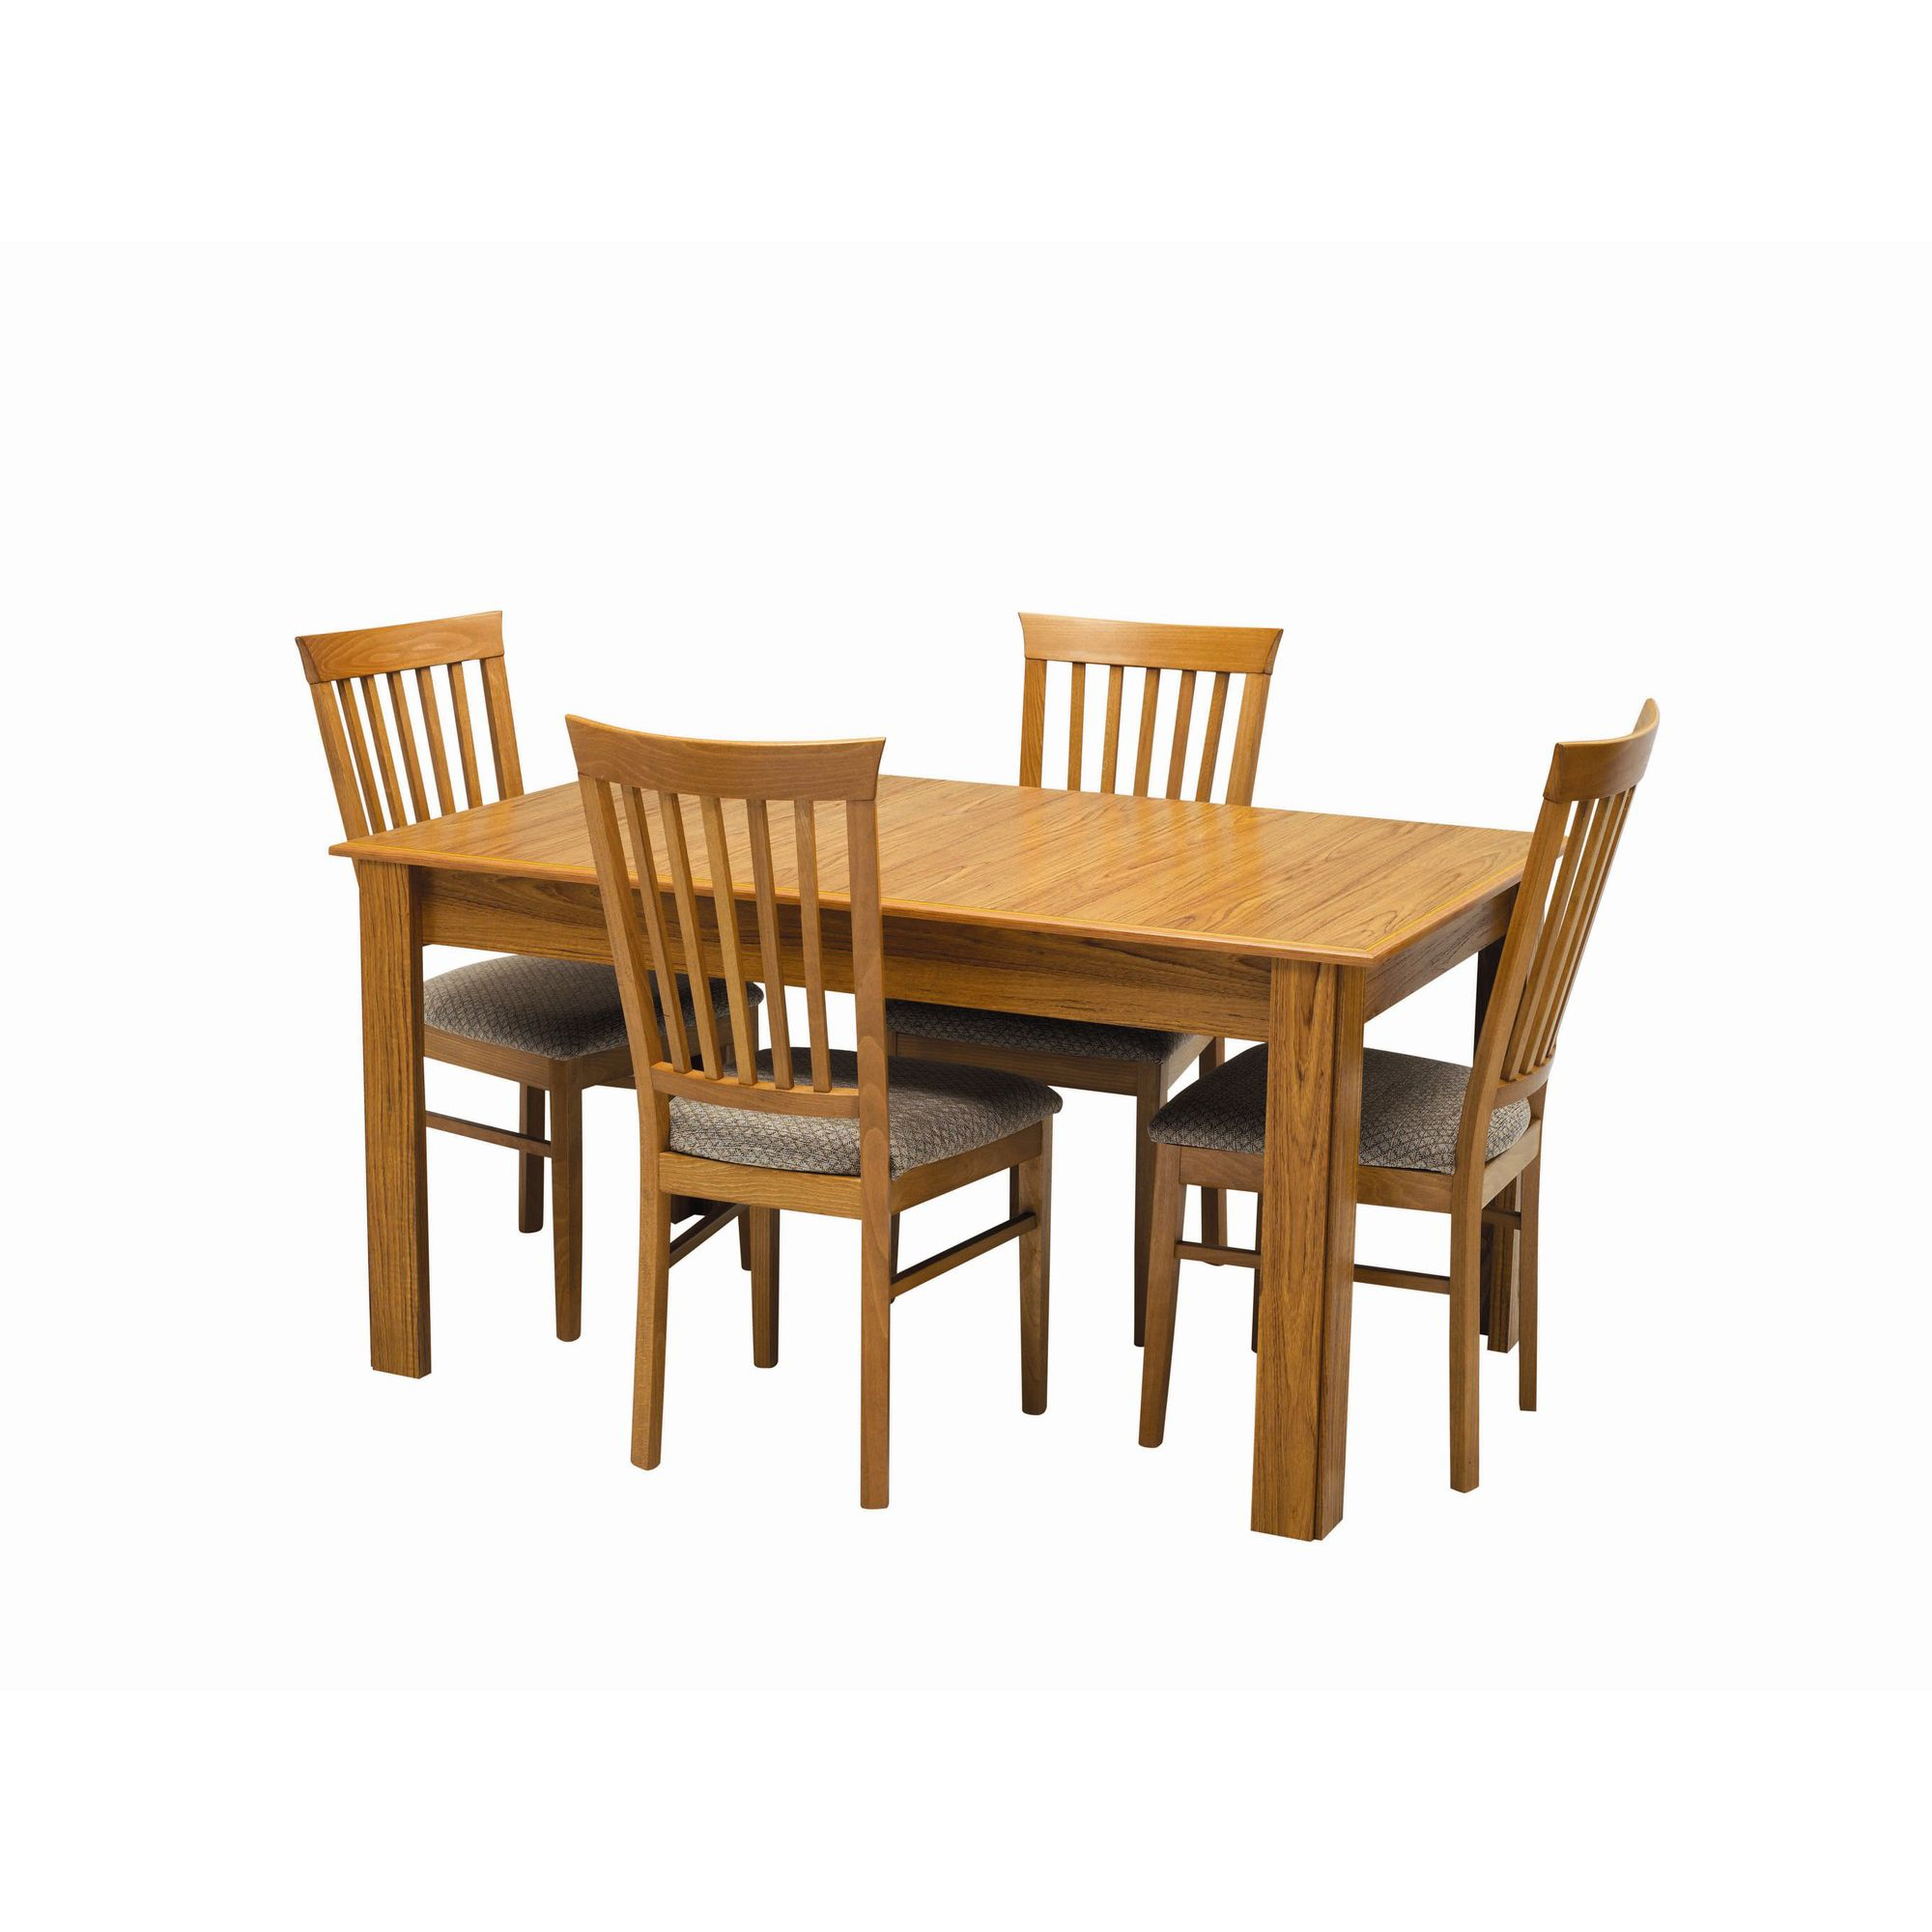 Home And Garden Furniture Caxton Huxley Dining Table Set With 4 Upholstered Dining Chairs In